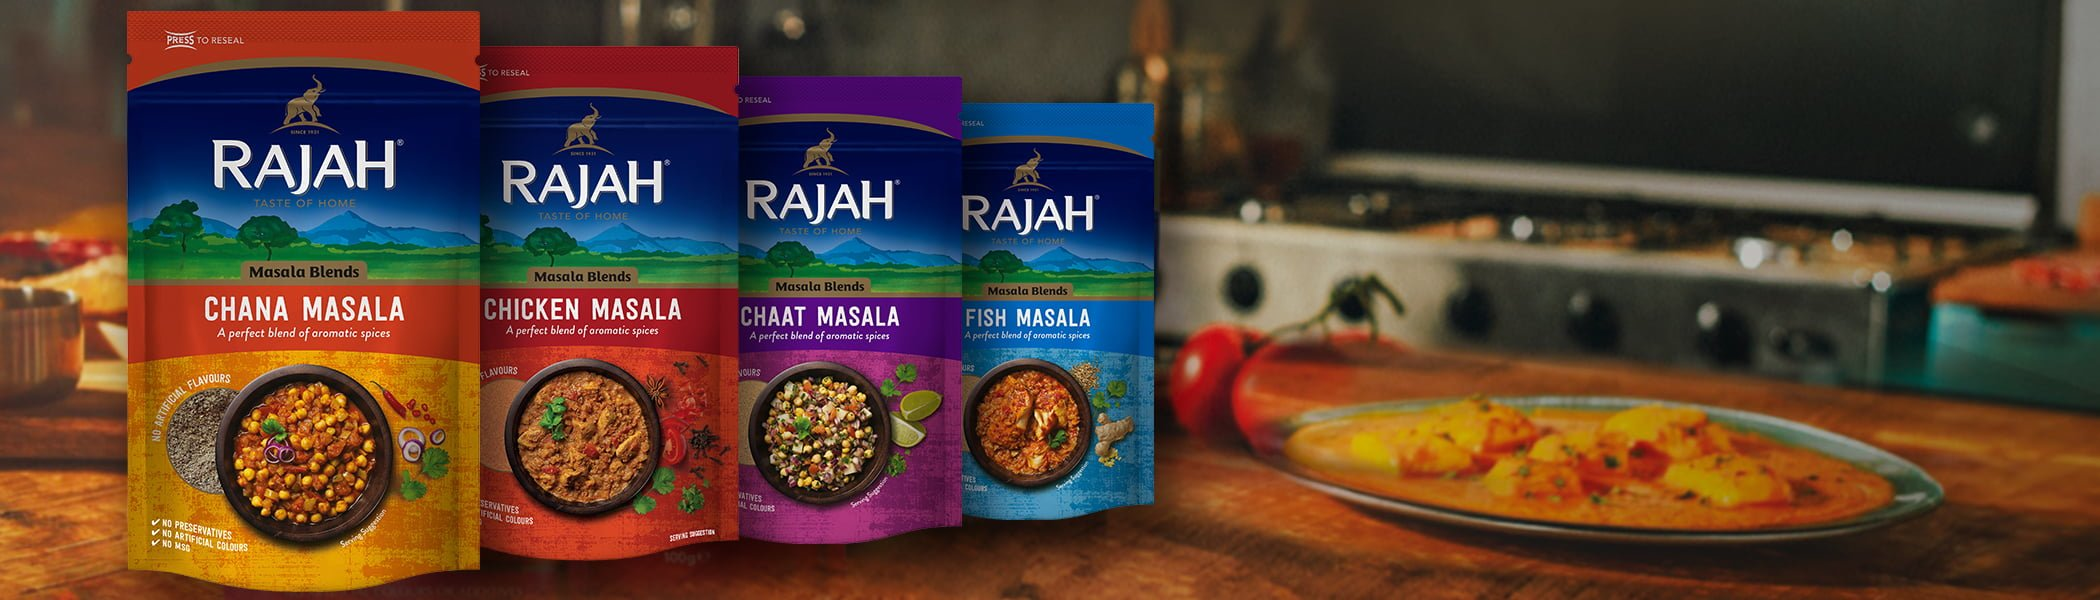 Rajah Recipes Teaser image